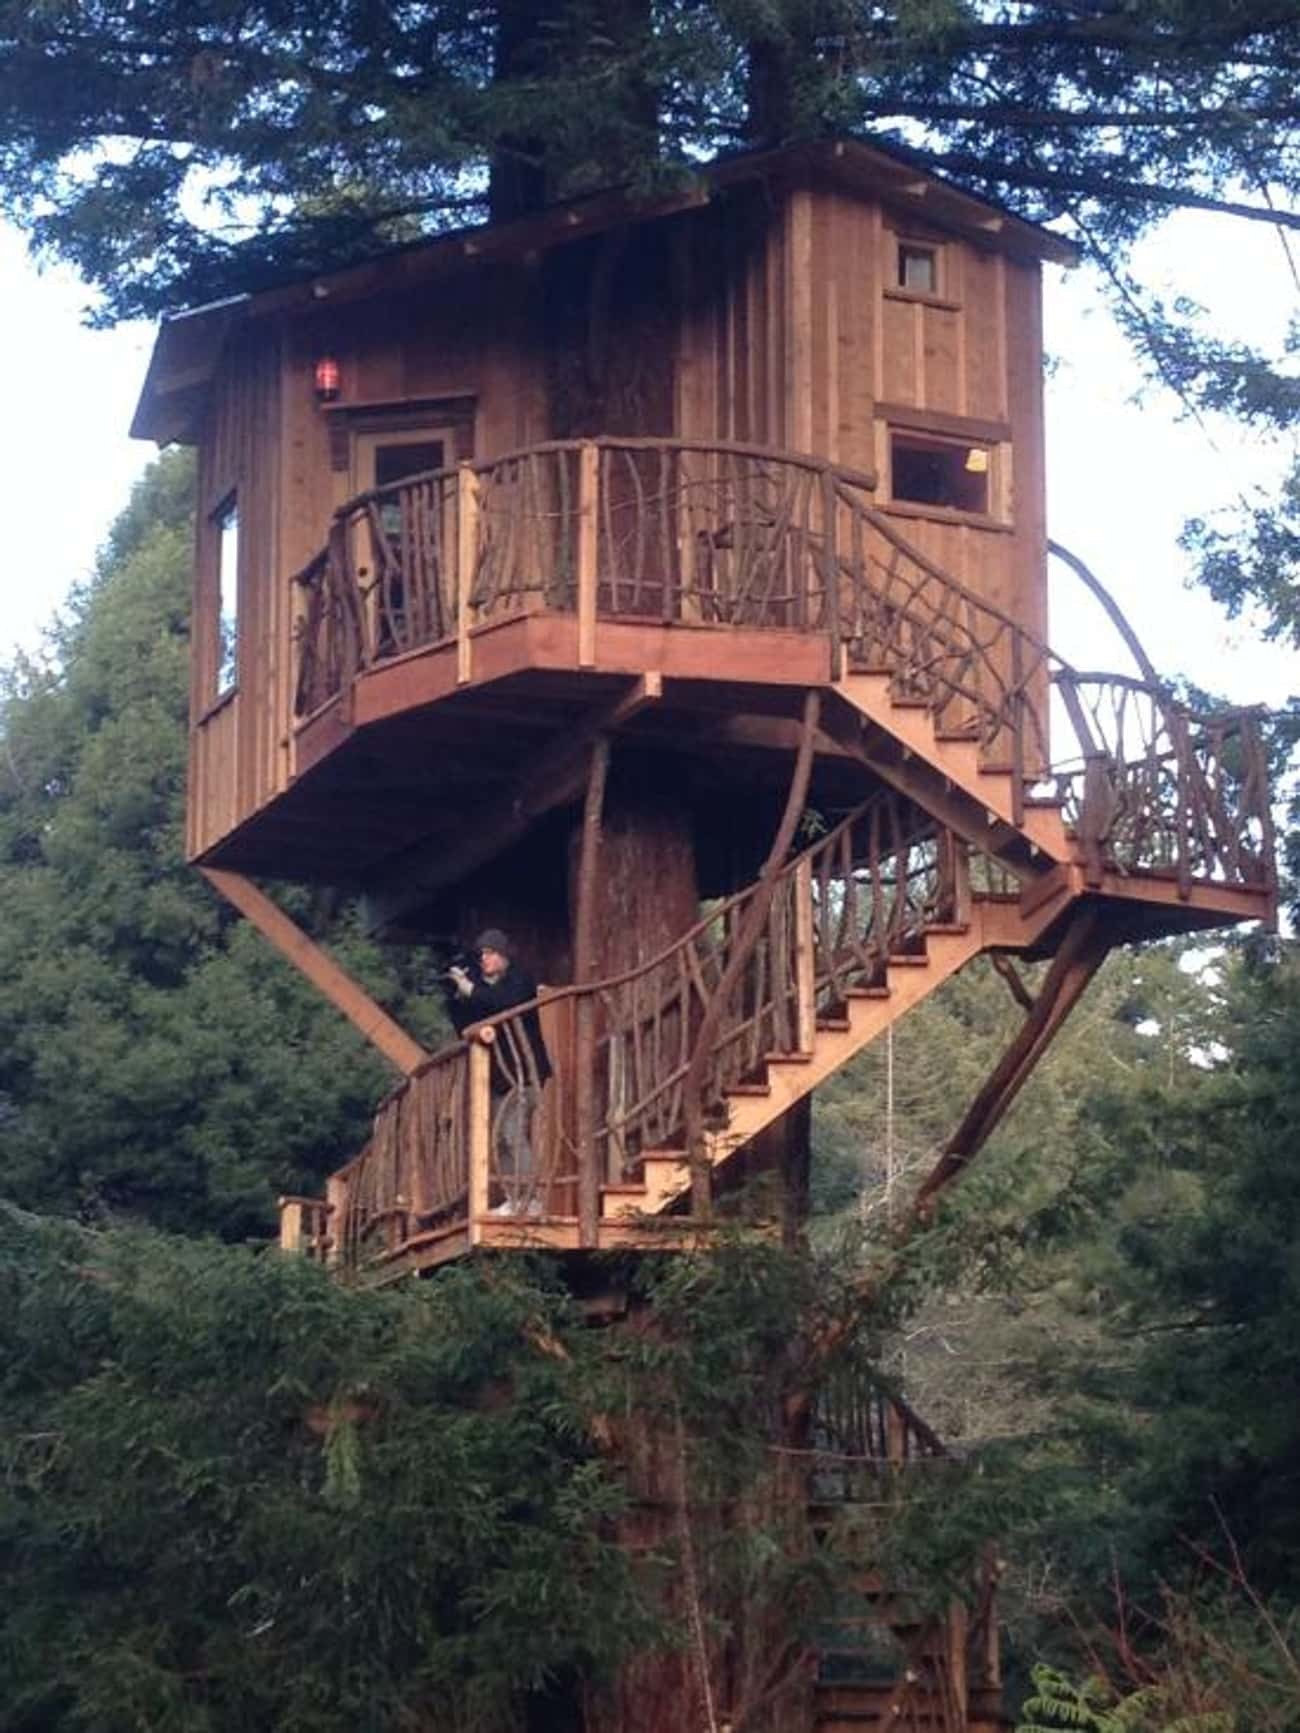 Arcata Redwood Treehouse is listed (or ranked) 2 on the list The Coolest Treehouses in the World